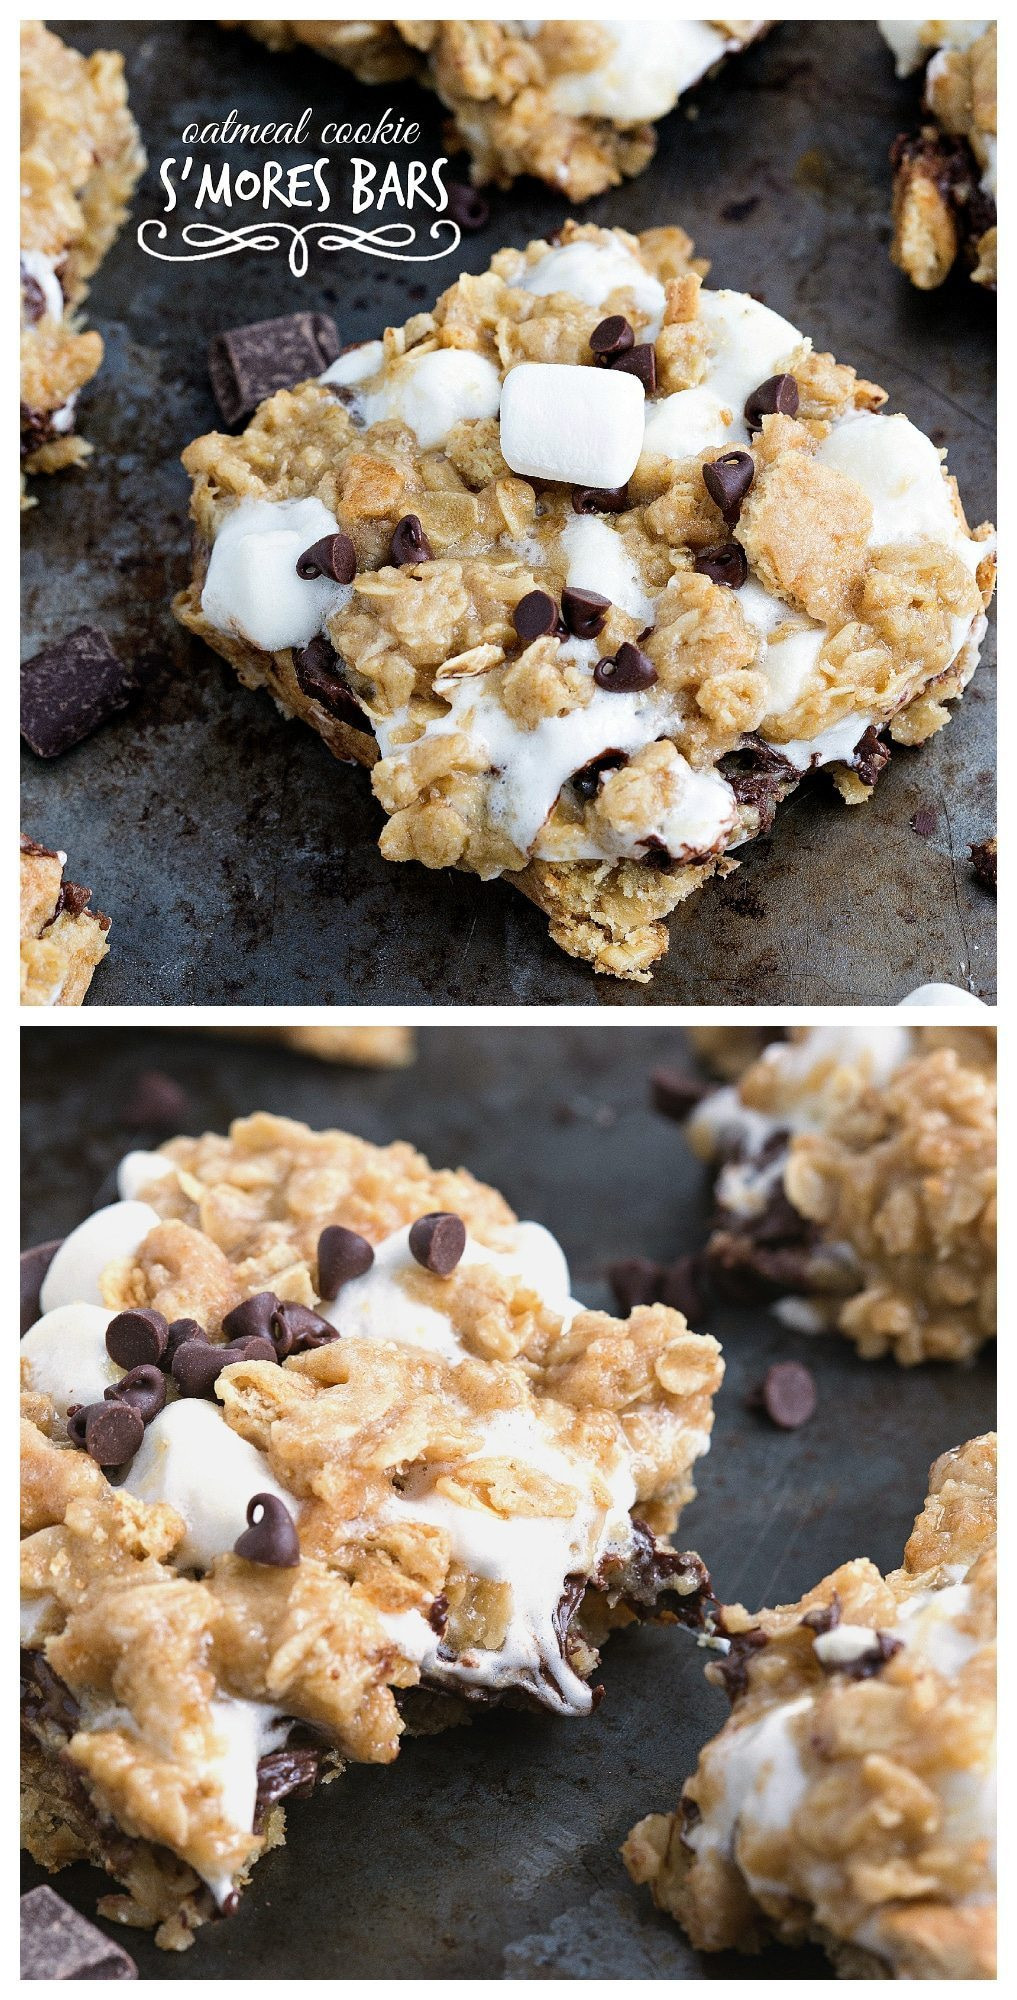 S Mores Dessert Bars  Oatmeal Cookie S'mores Gooey Bars